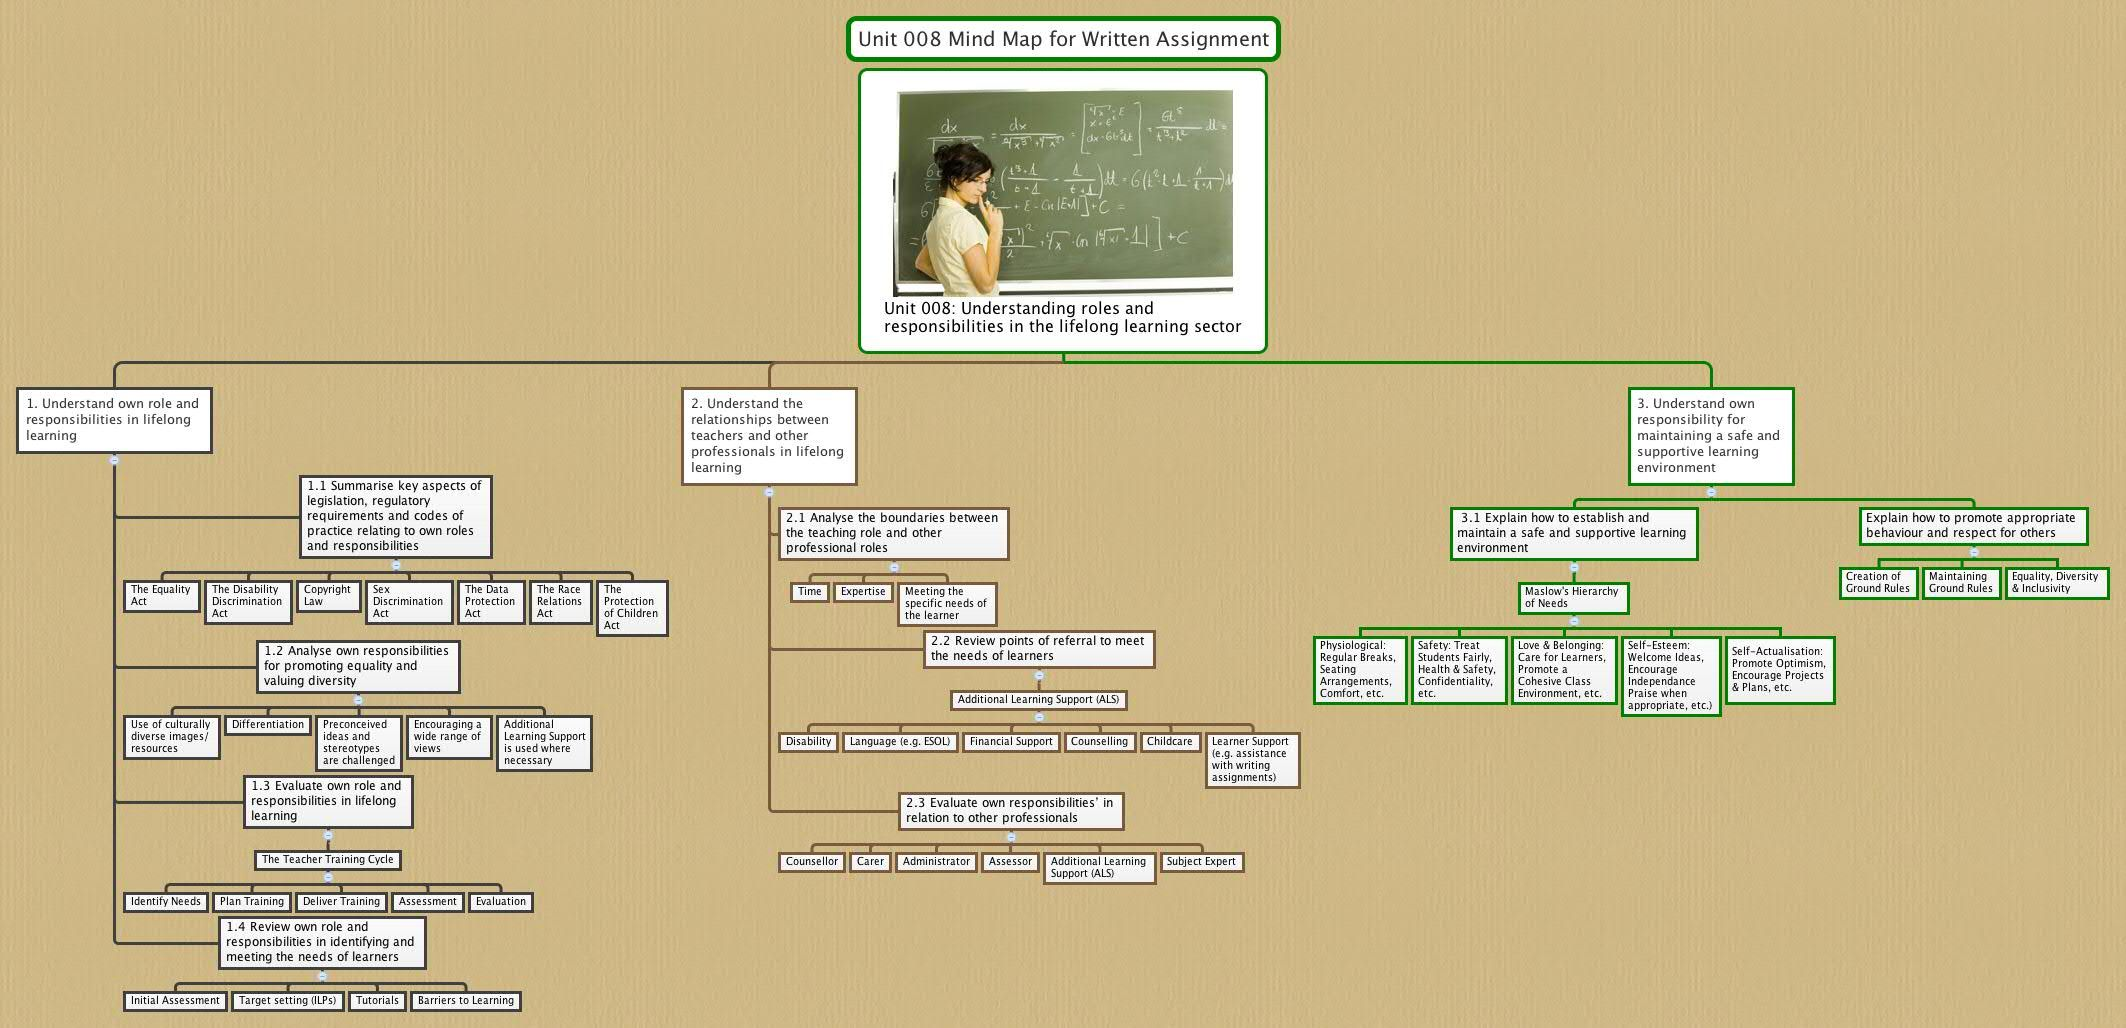 boundaries between teaching role and other professionals